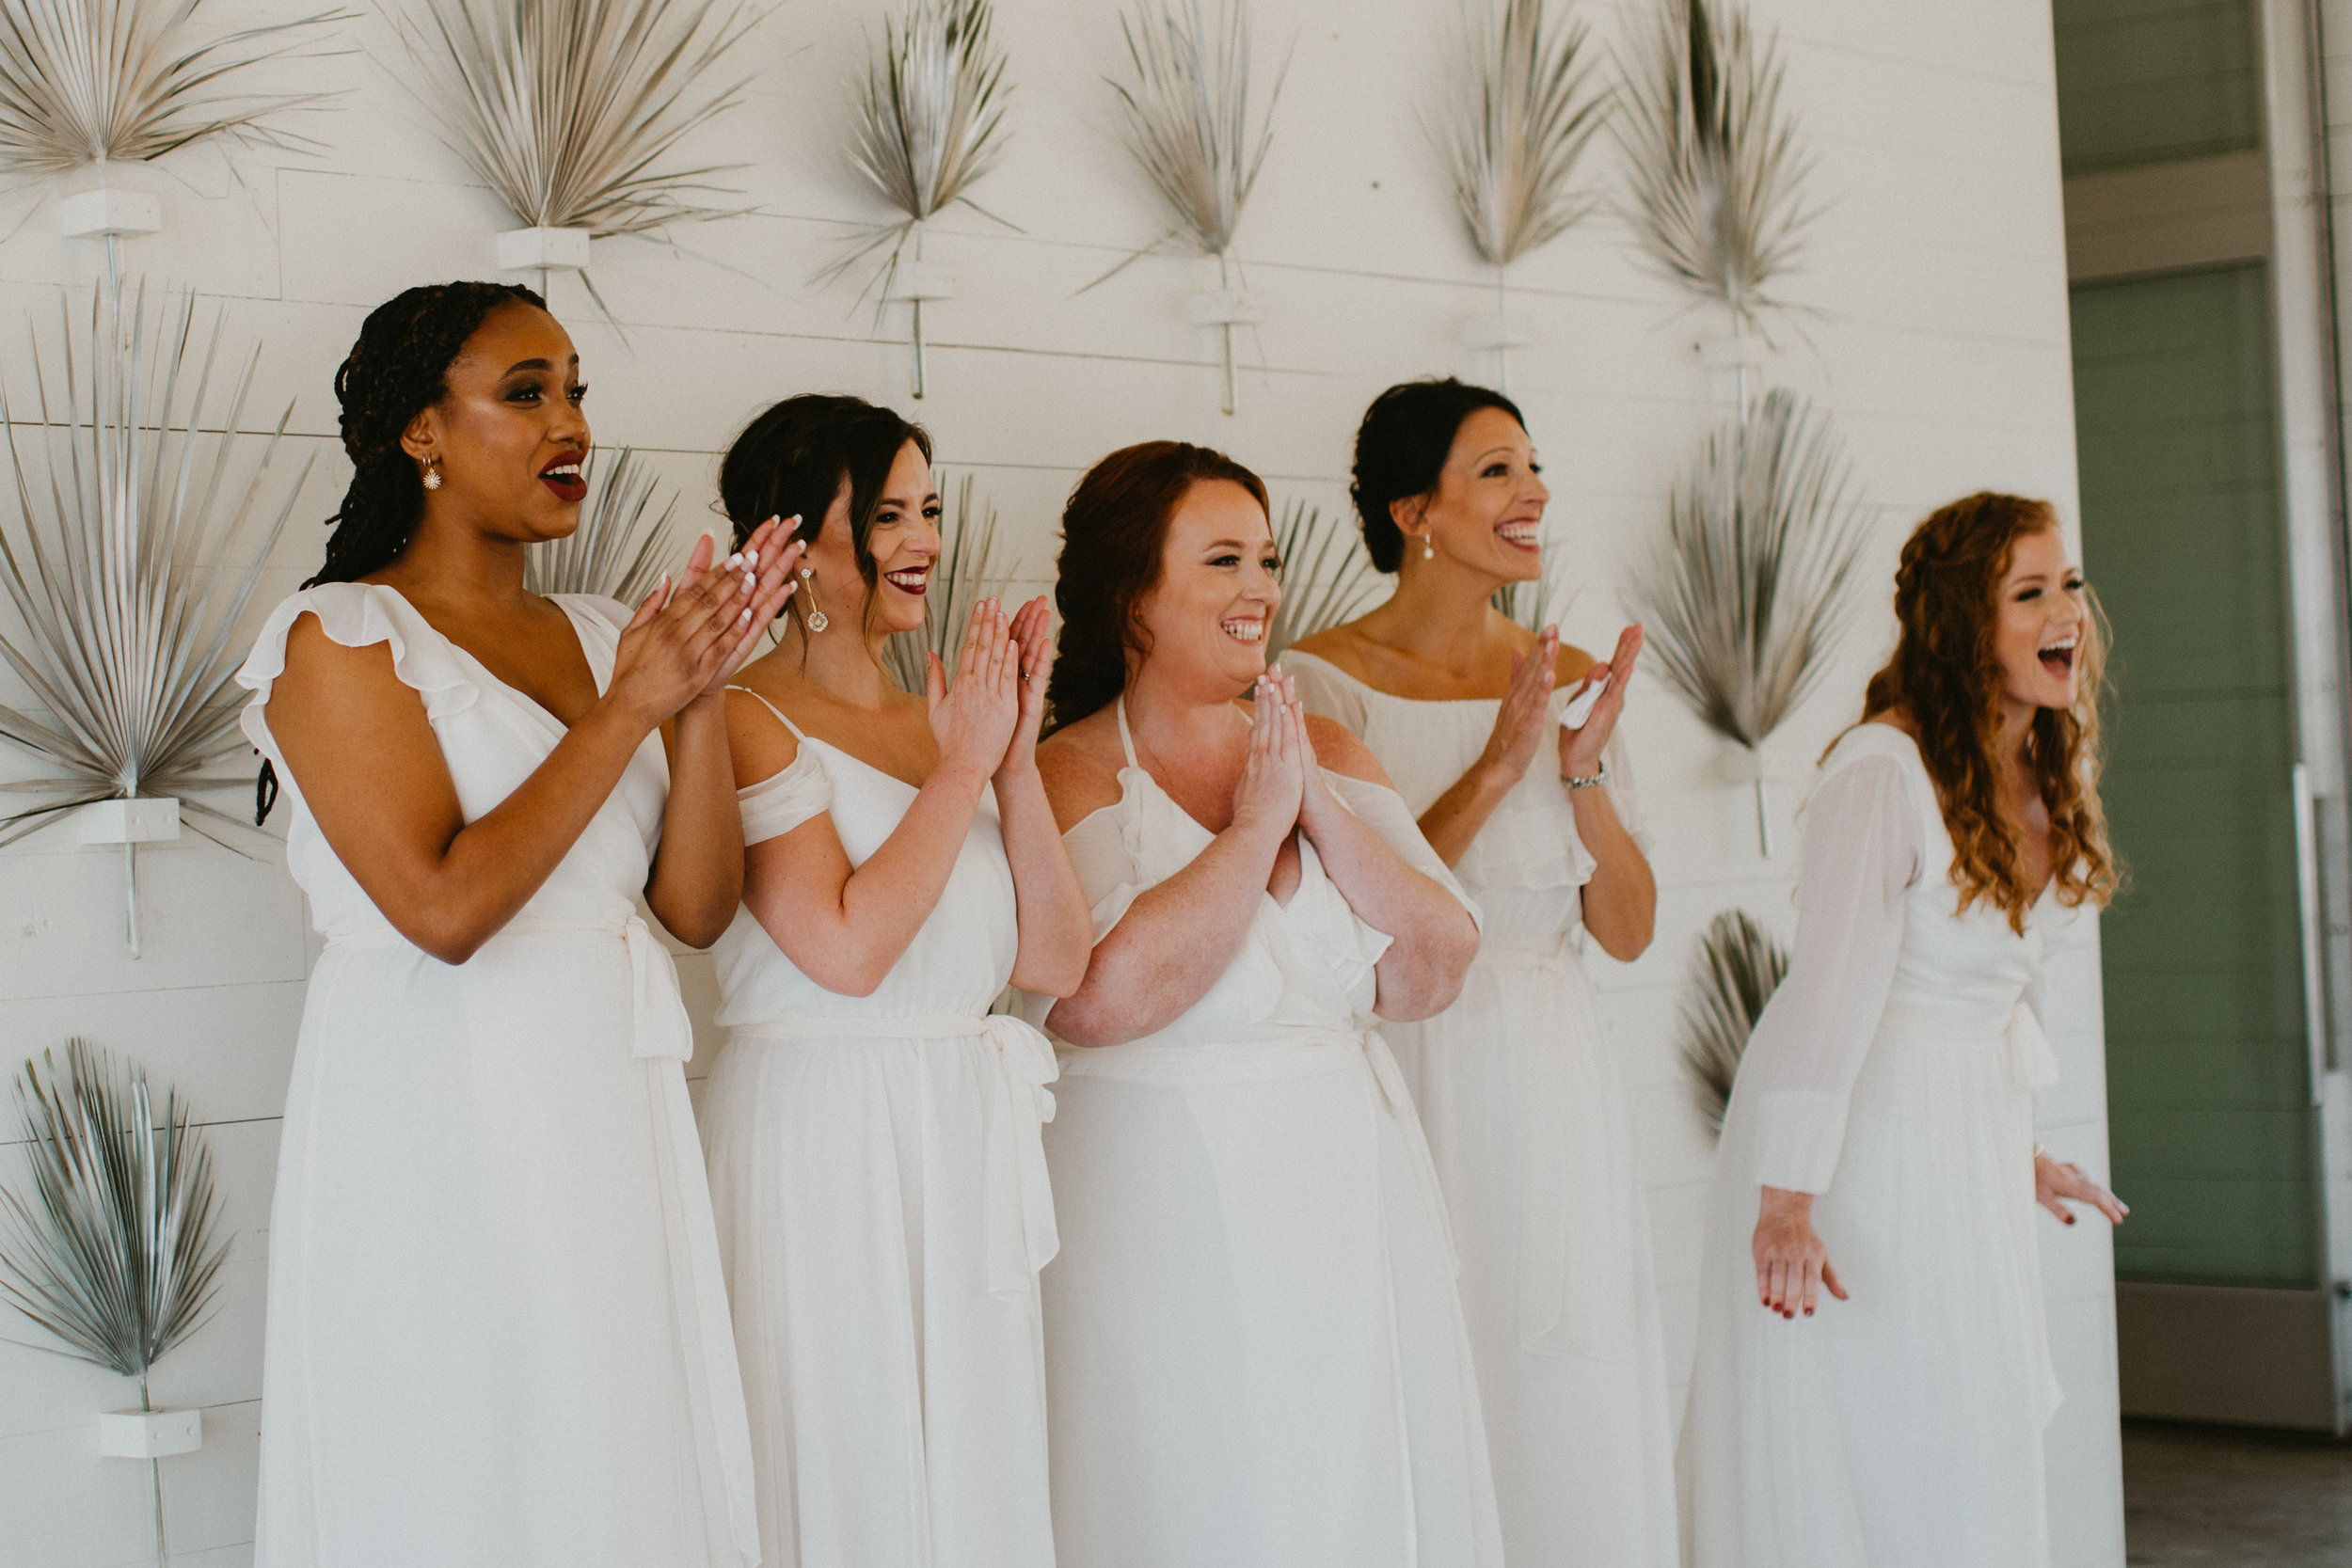 First look with bridesmaids wedding day austin mismatched white bridesmaid dress inspiration + destination planner coordinator epoch co + photographer century tree prospect house